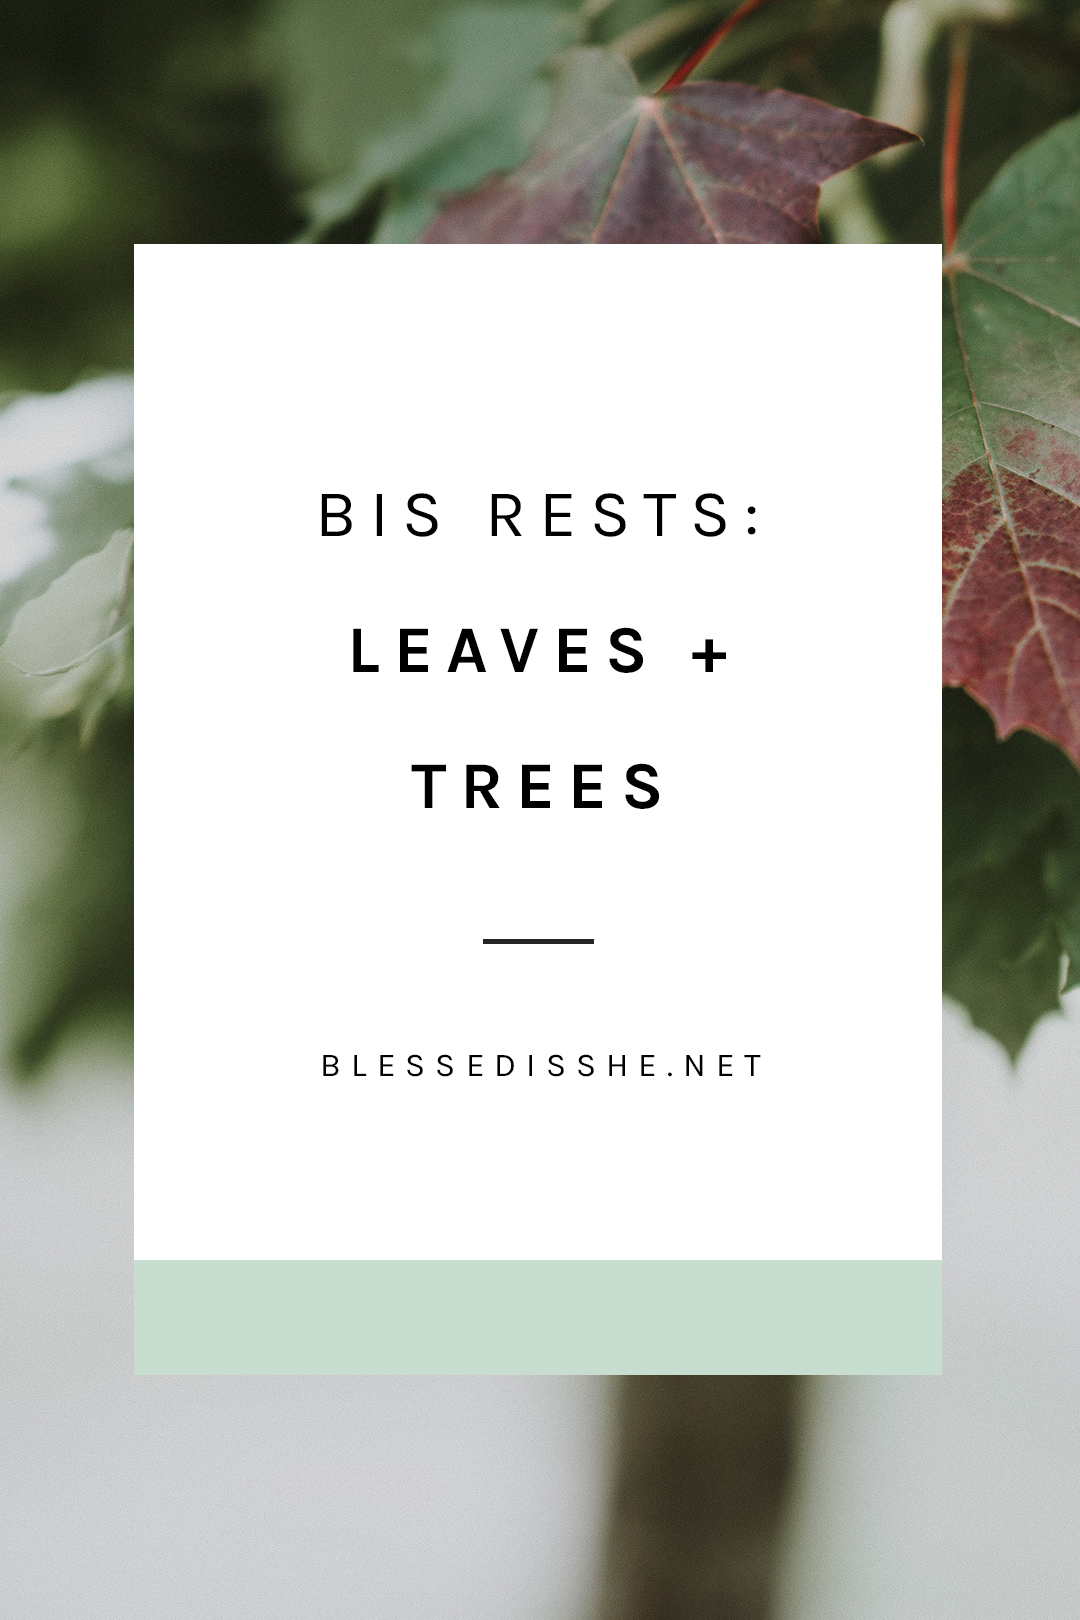 bis rests leaves + trees